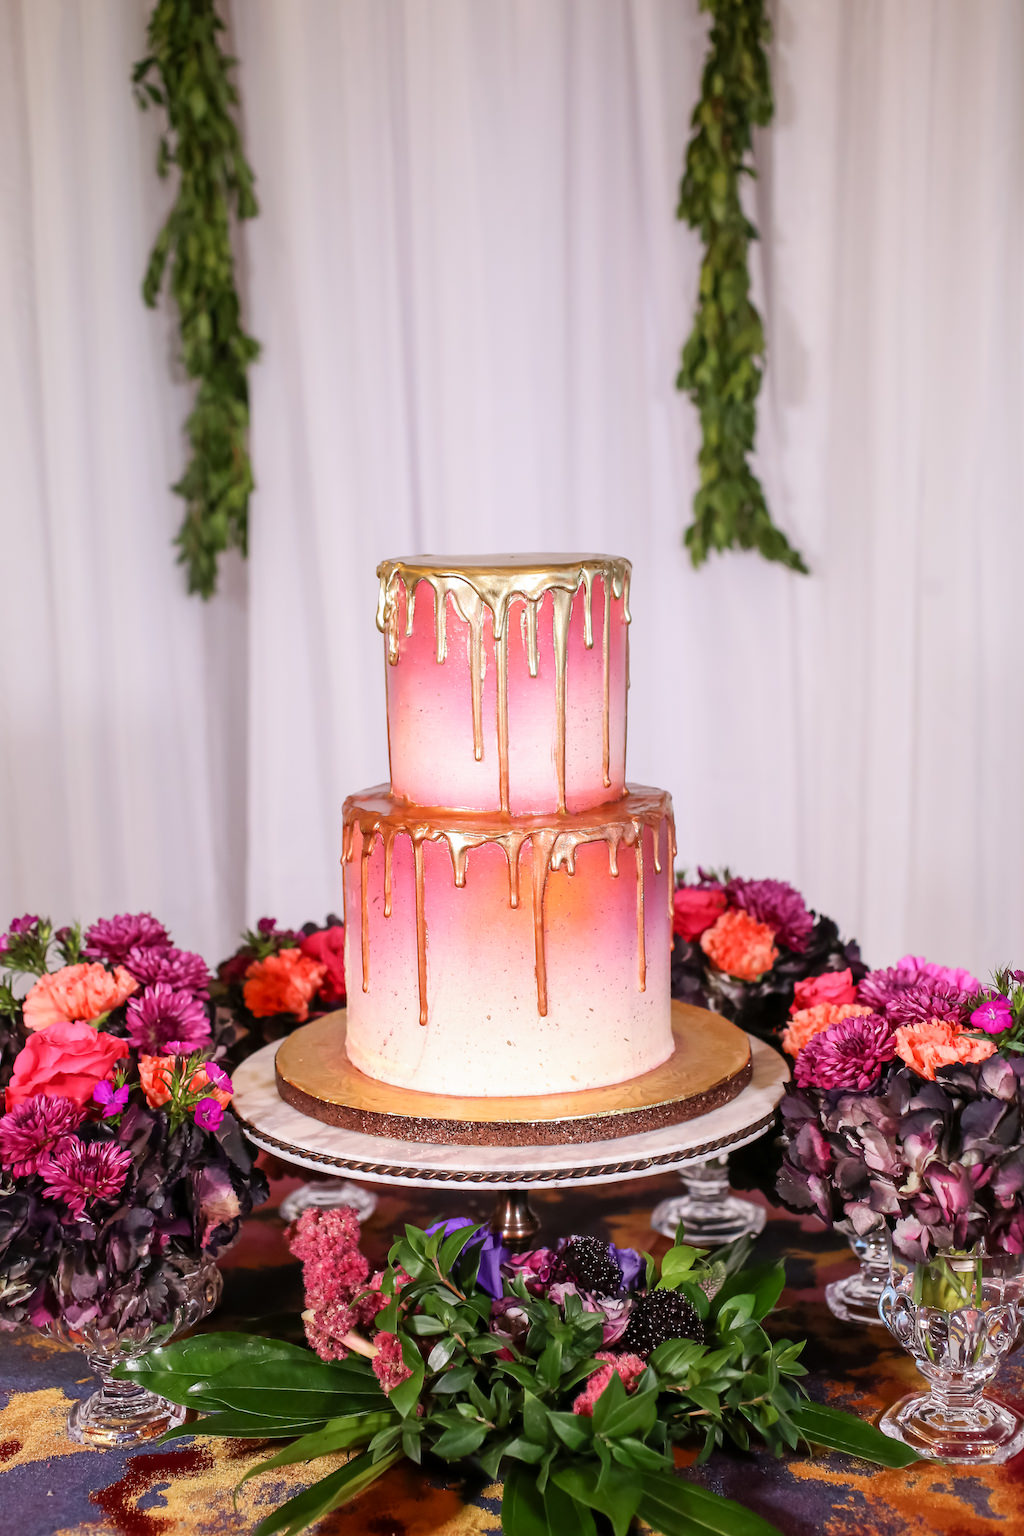 Two Tier Round Pink And White Ombre Wedding Cake With Gold